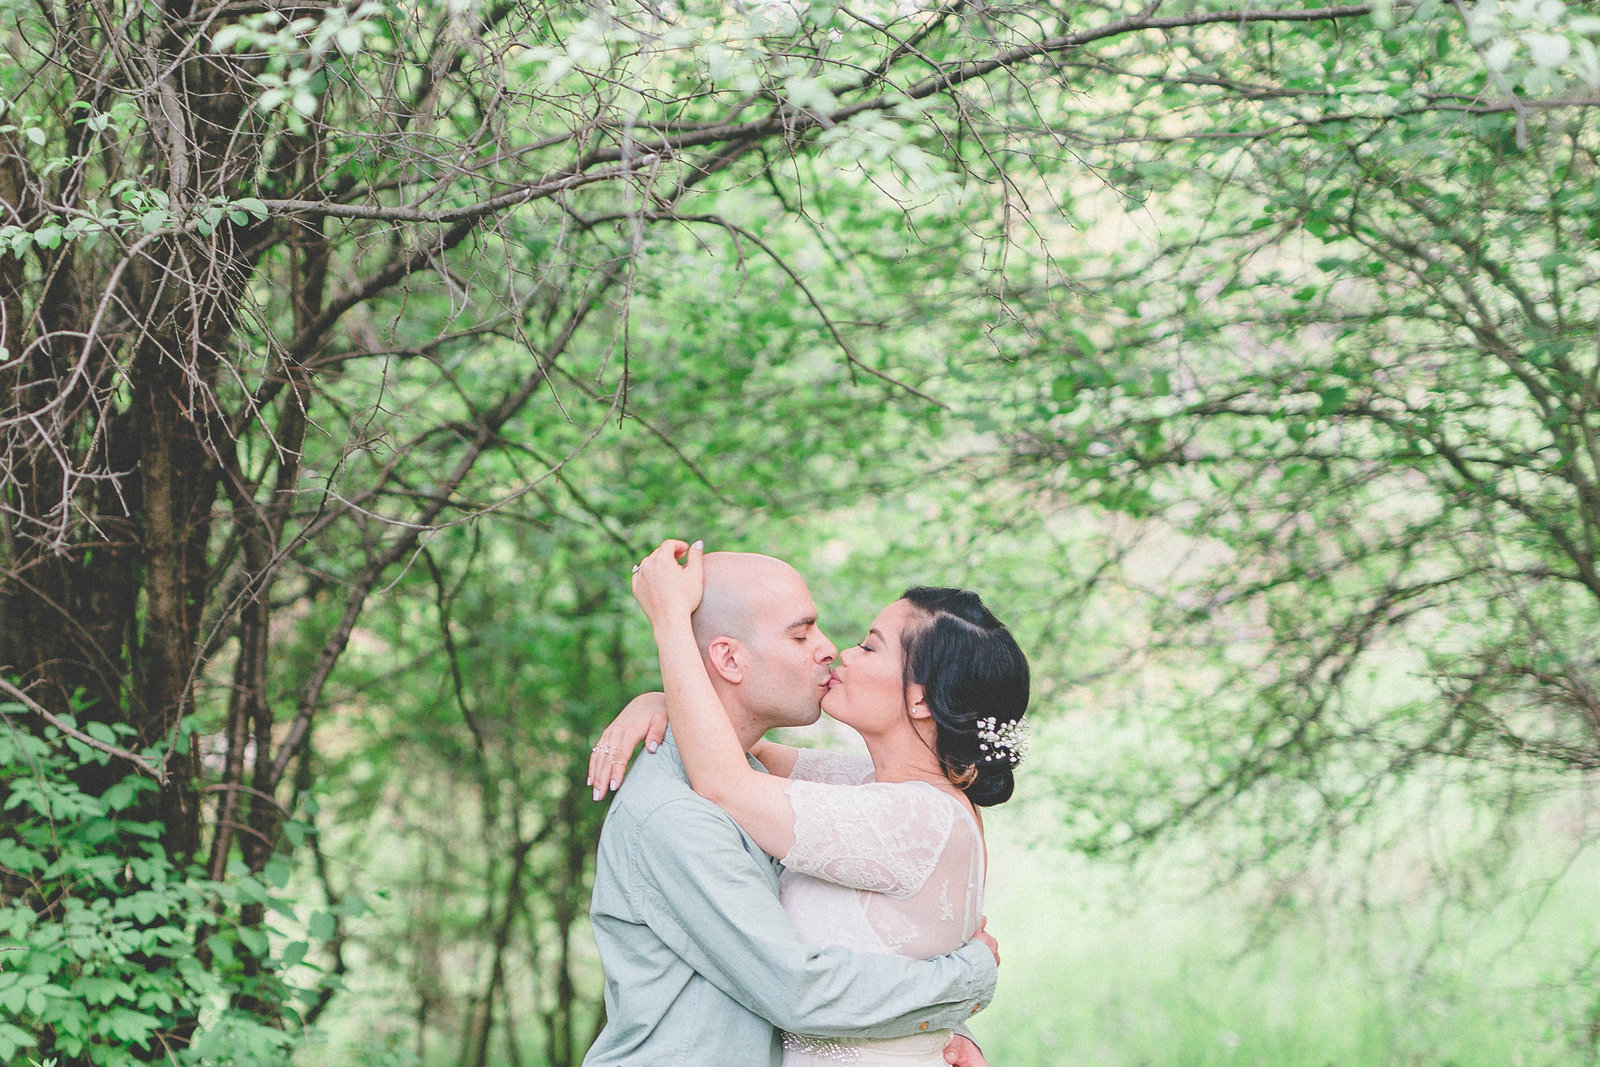 MikeAndFontaneEngaged_052516_WeeThreeSparrowsPhotography_141